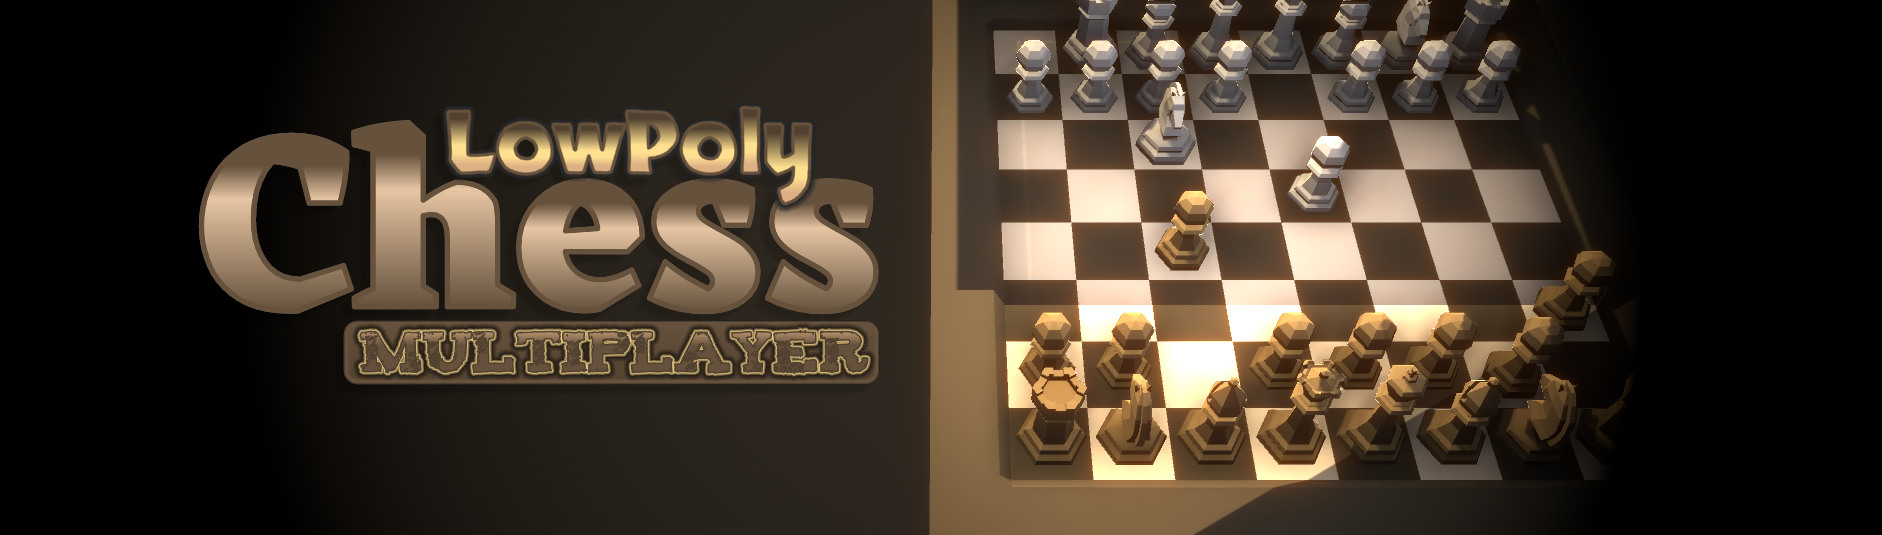 LowPoly Chess multiplayer